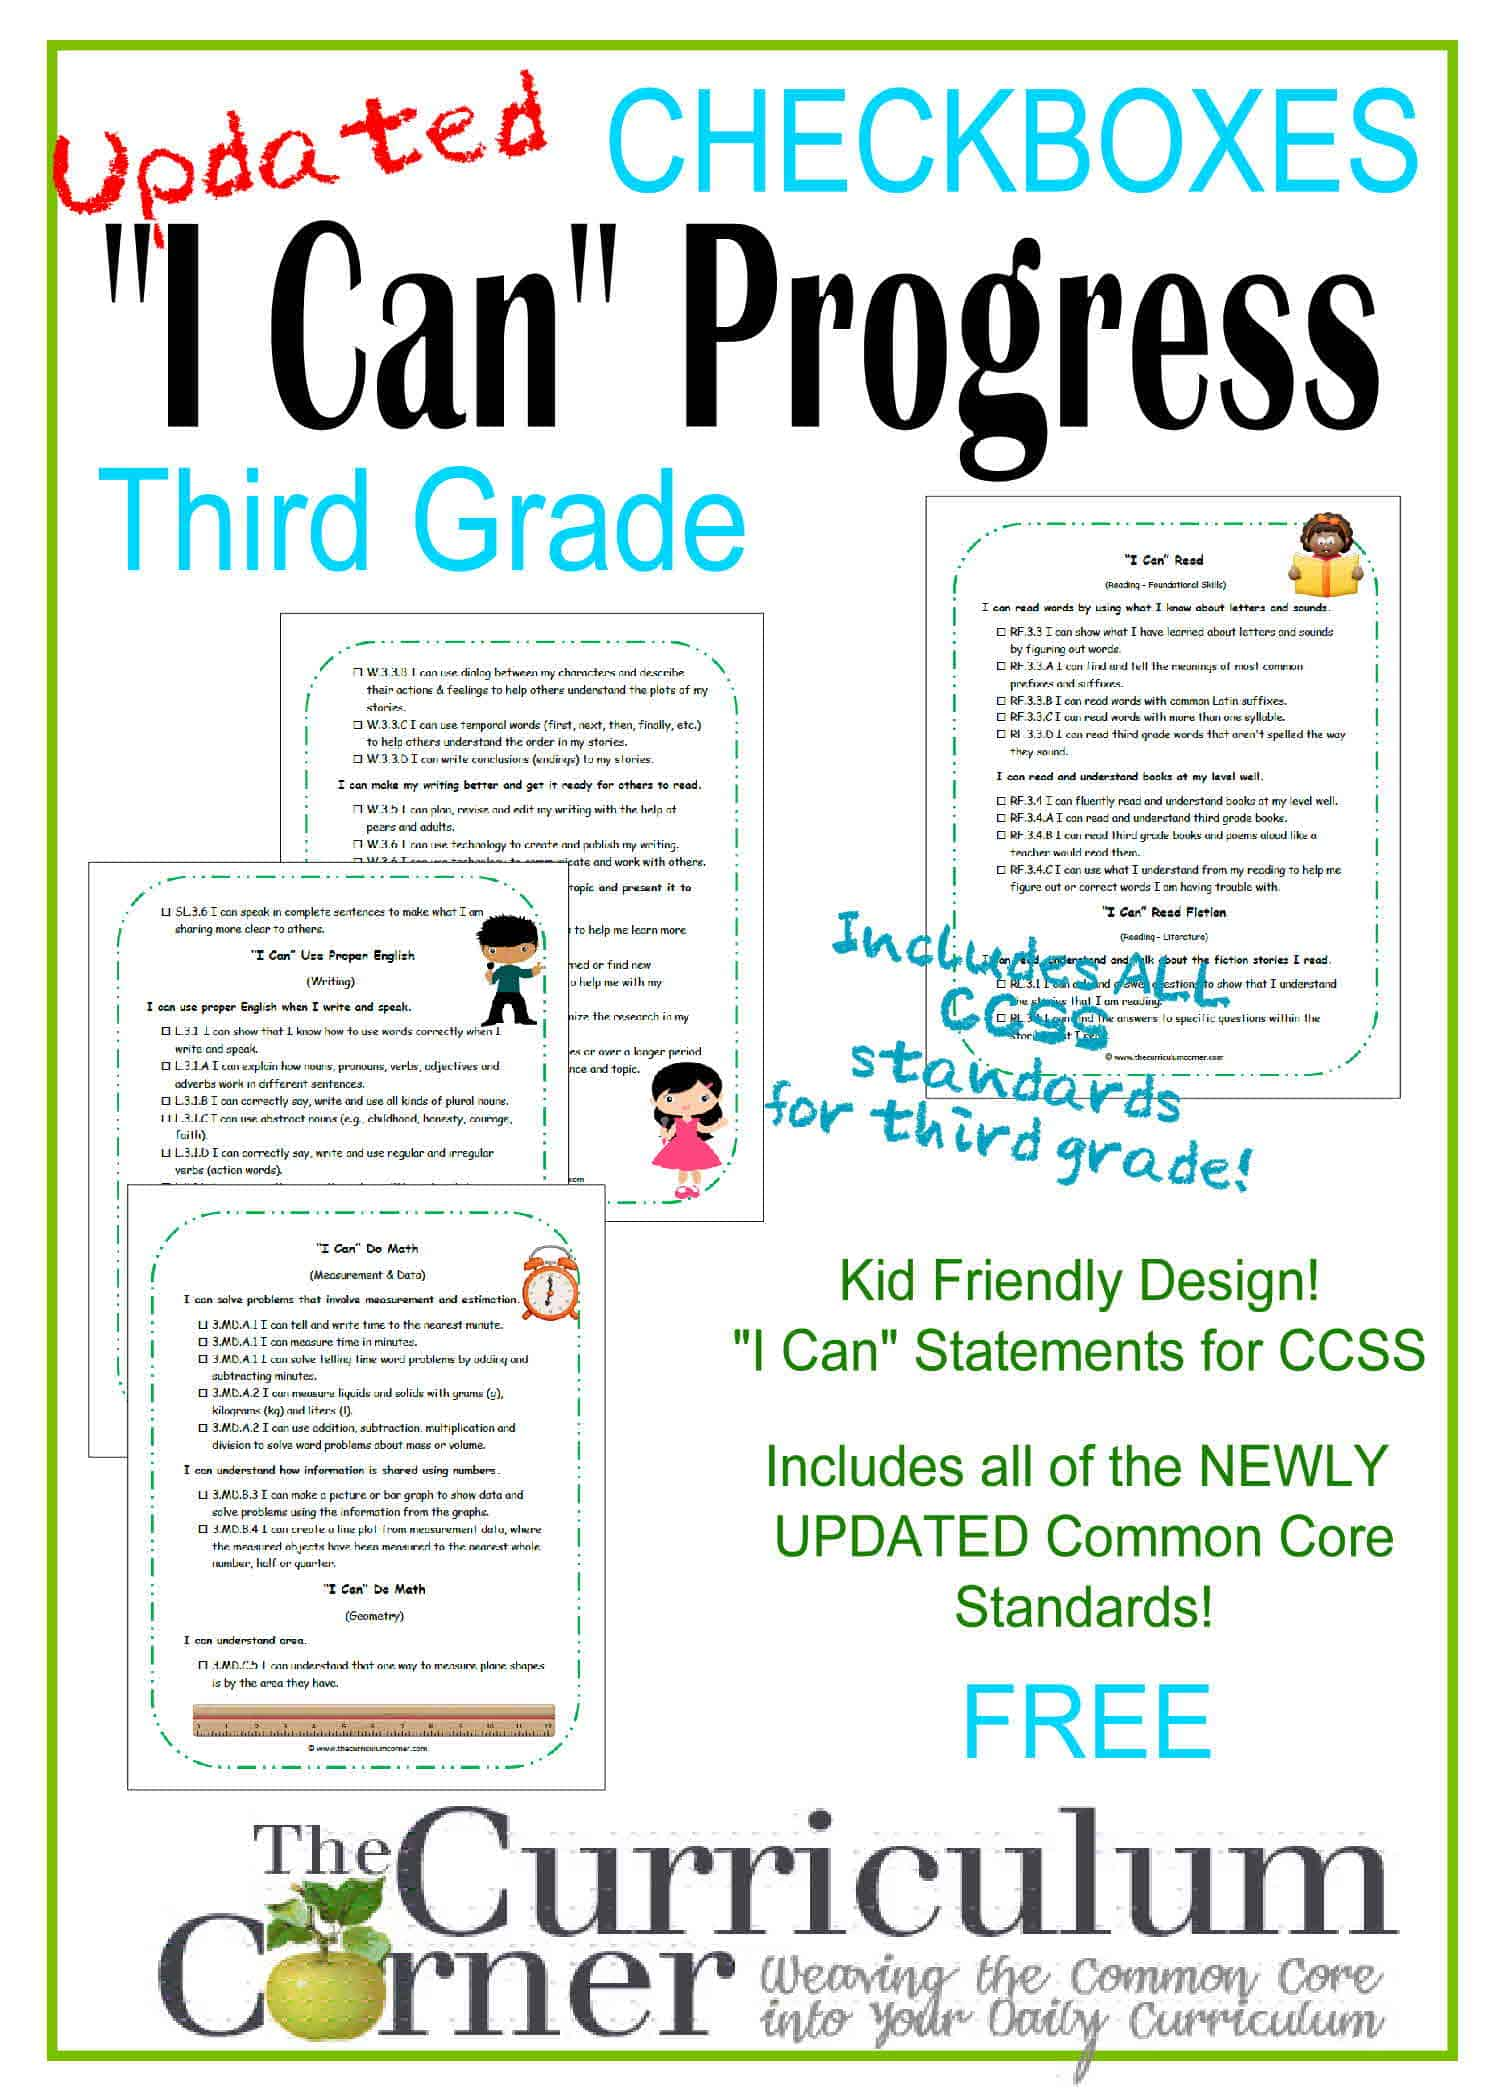 3rd Grade Kid Clip Art I Can Ccss Statement Progress